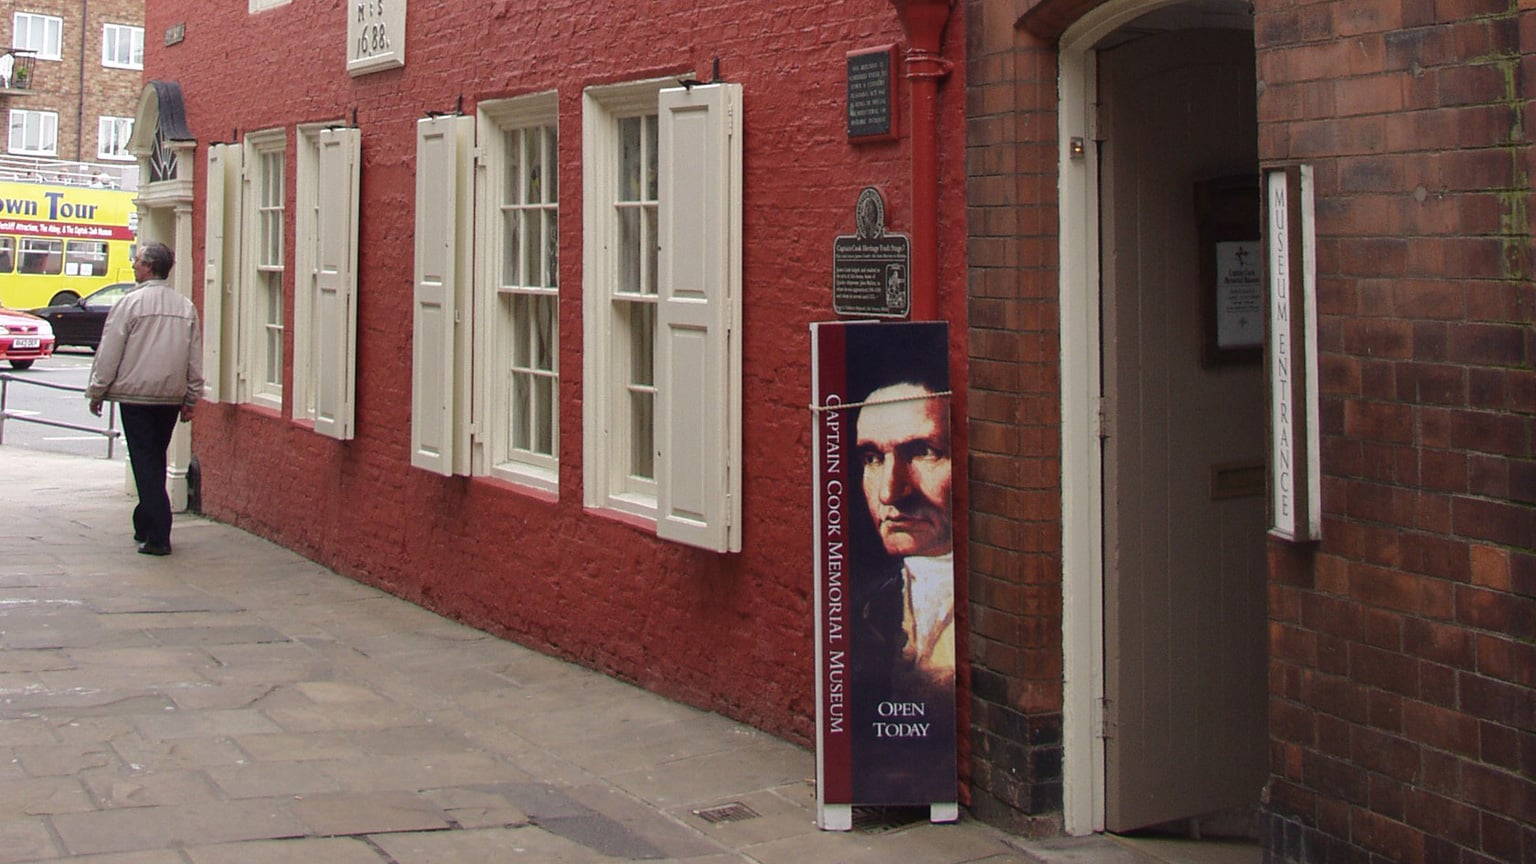 3. Captain Cook Memorial Museum, Whitby - Free entry and exhibitions with National Art Pass